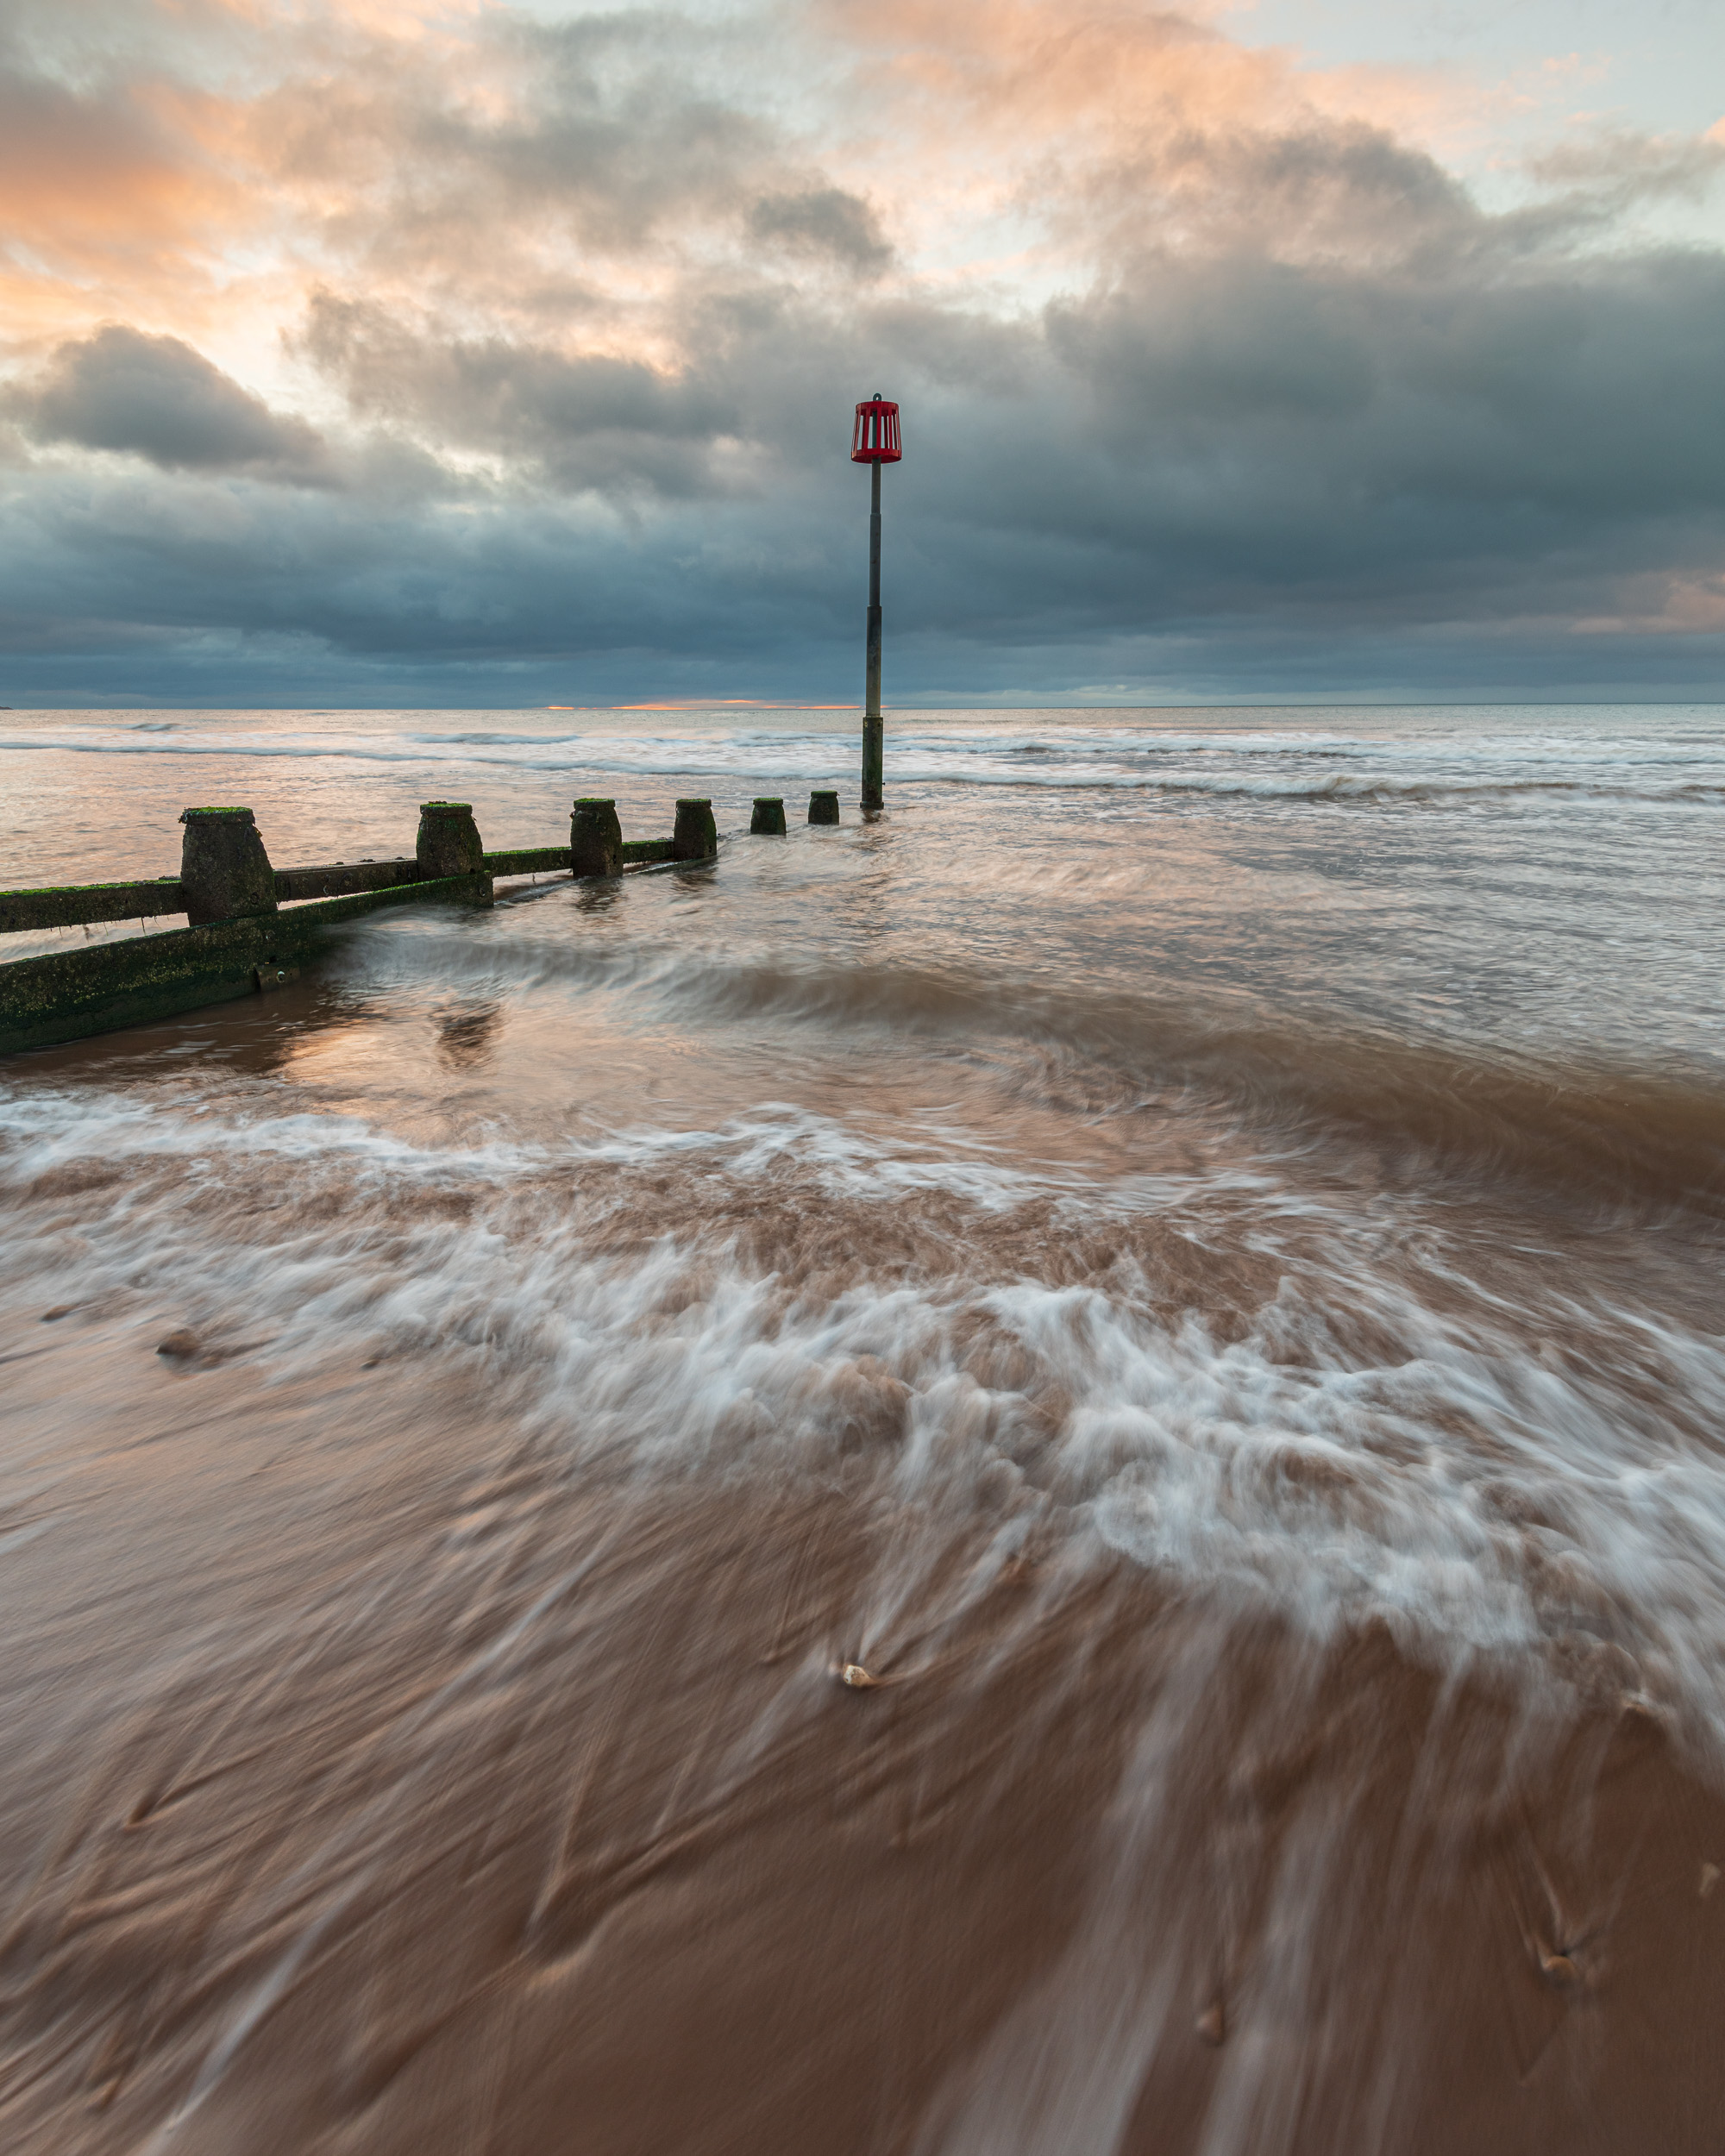 Dawlish Warren, Devon  - Nikon D850, Nikkor 16-35mm f/4 at 16mm, f/11, 0.4 seconds at ISO 64.